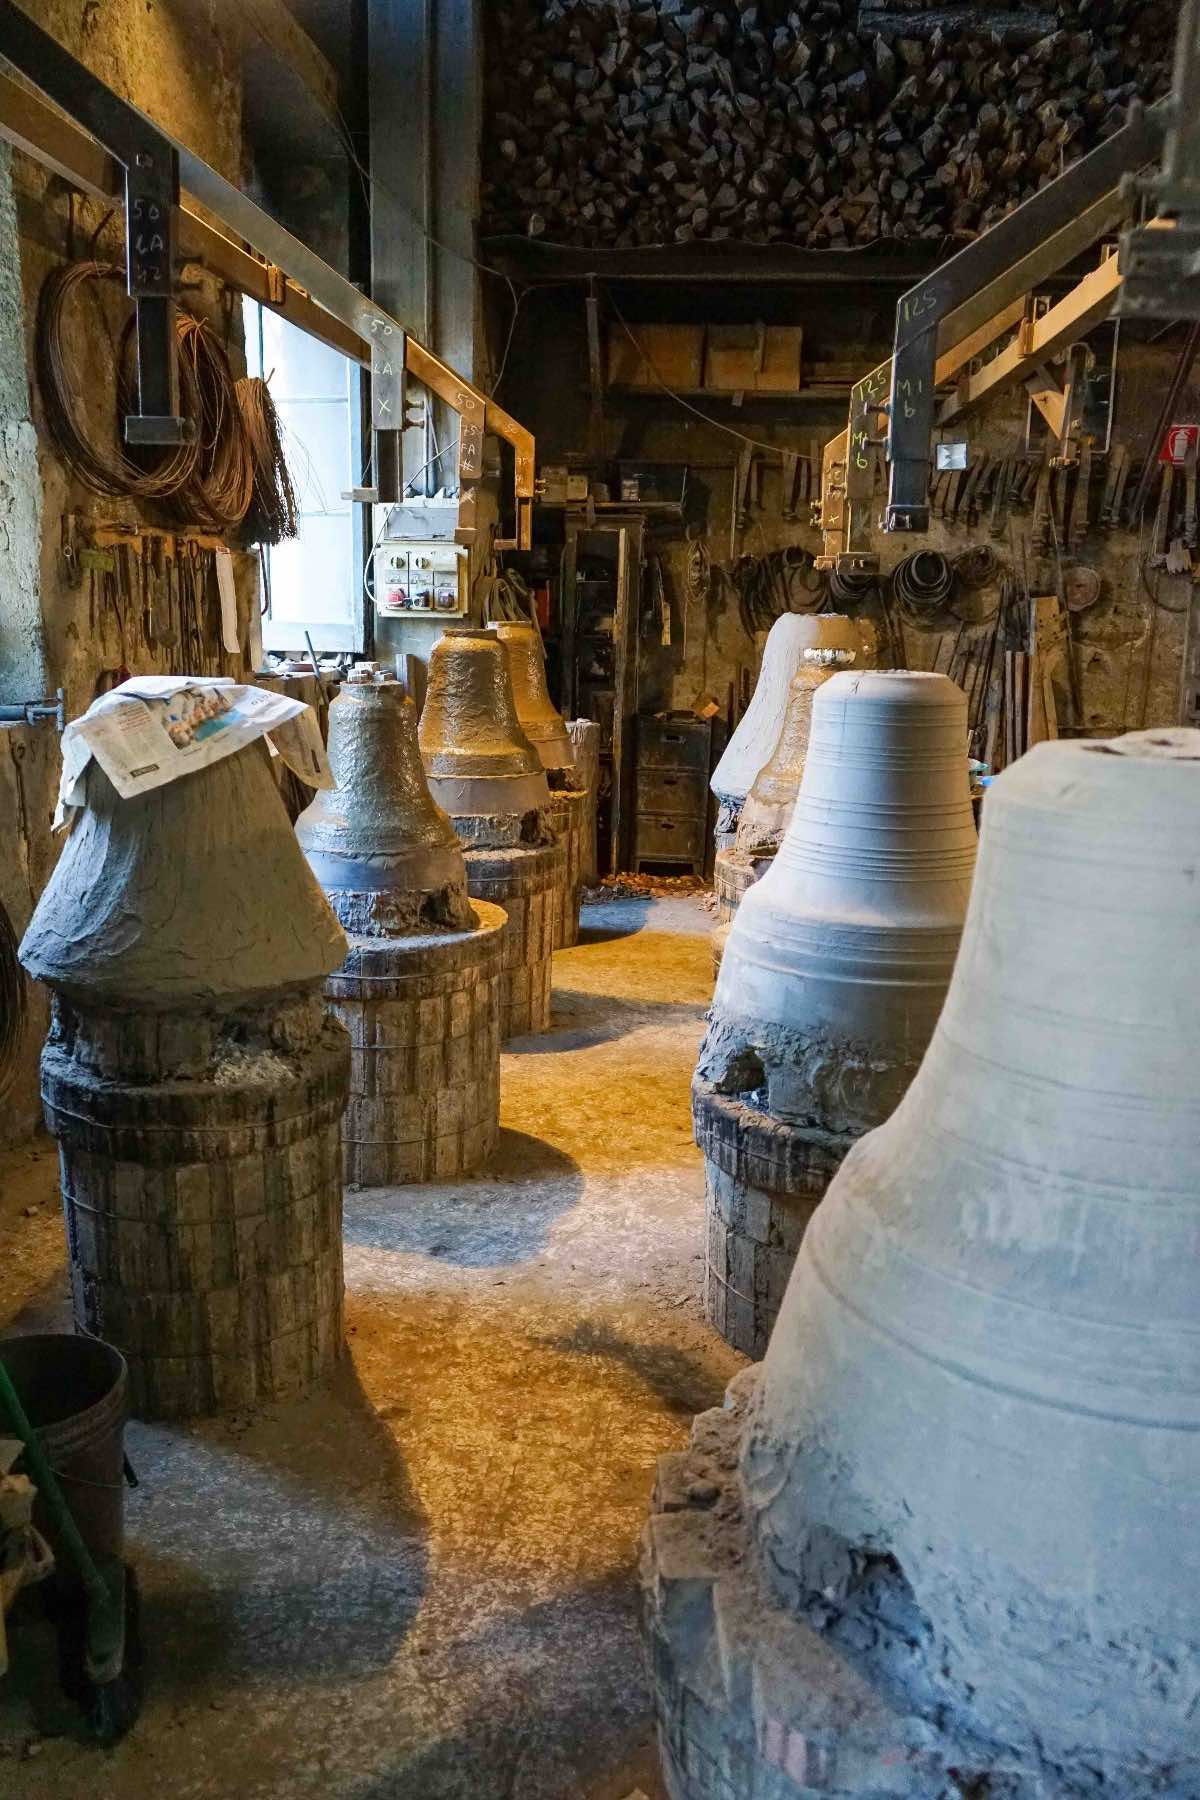 Inside the workshop of Marinelli Pontifical Foundry in Agnone